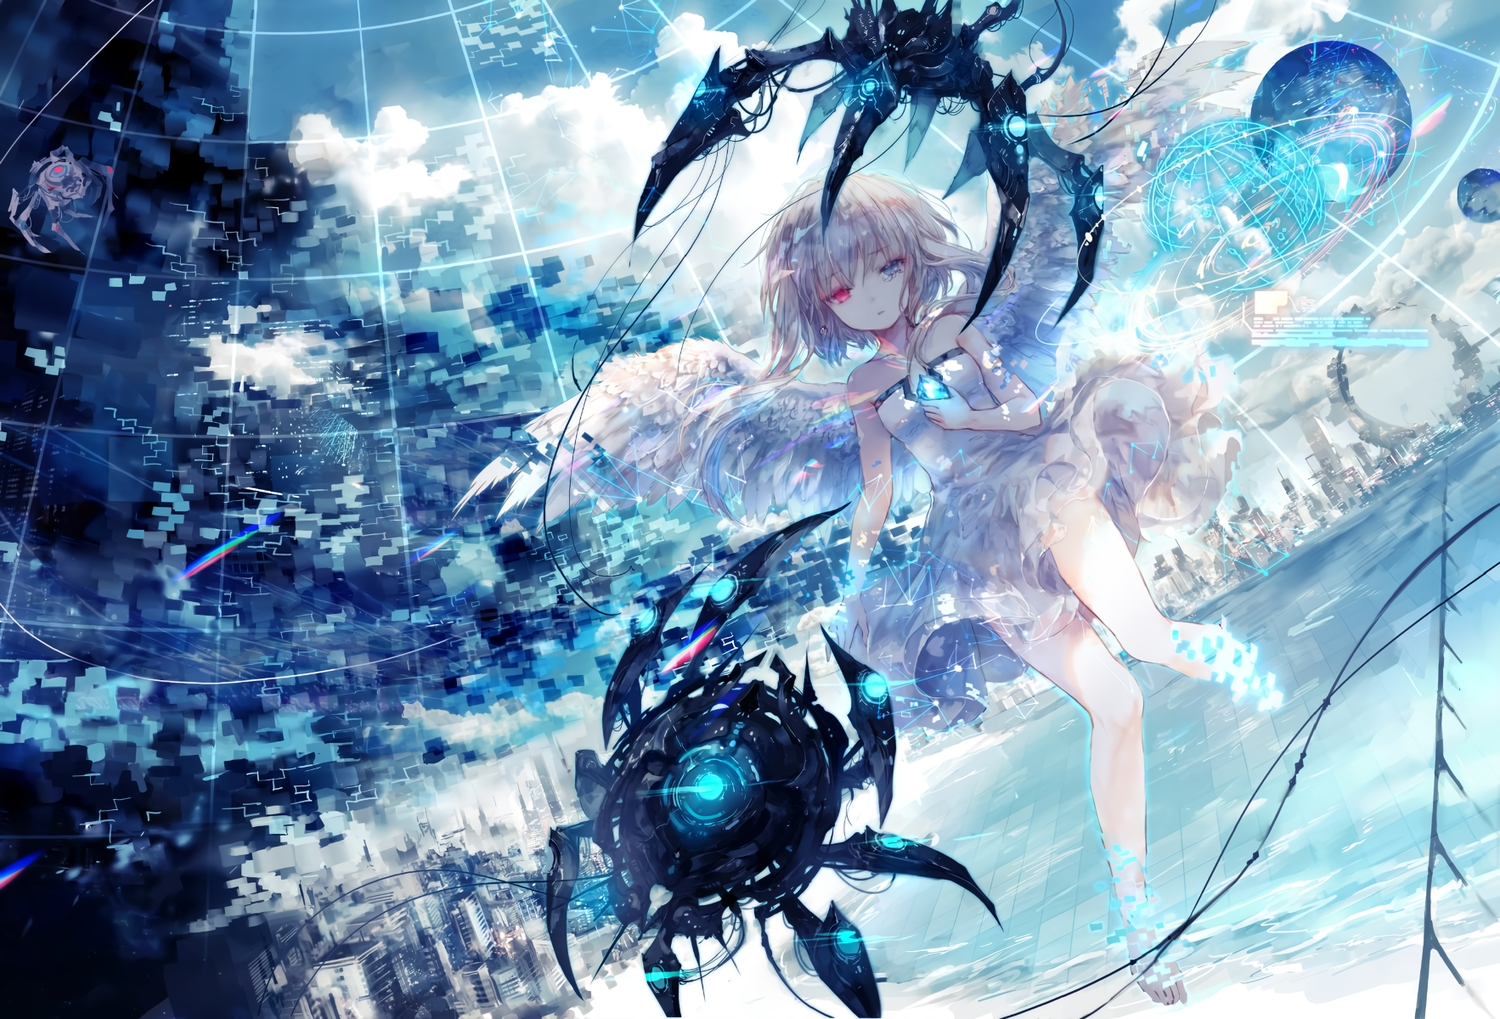 barefoot bicolored_eyes building city clouds dress onineko original robot sky water white_hair wings